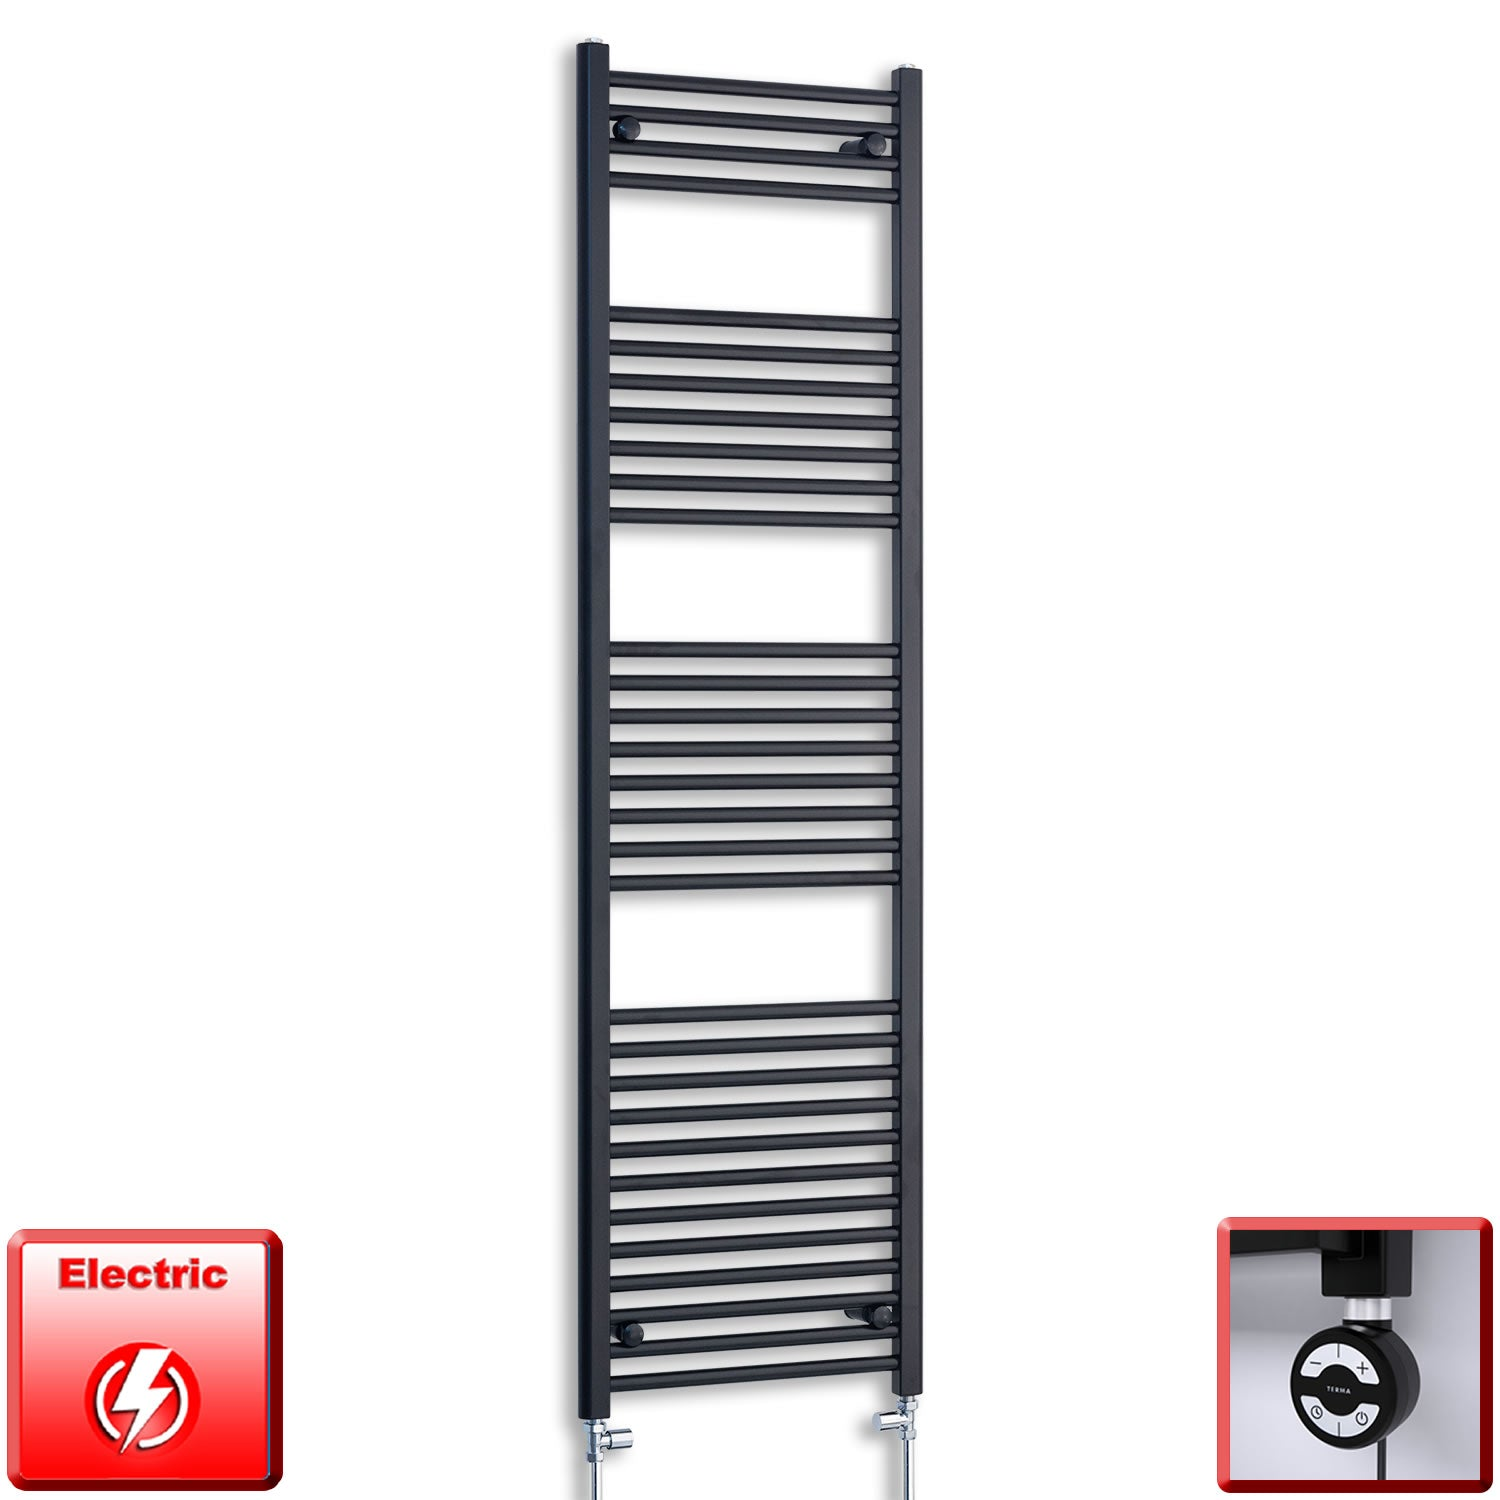 450mm Wide 1800mm High Flat Black Pre-Filled Electric Heated Towel Rail Radiator HTR,MOA Thermostatic Element